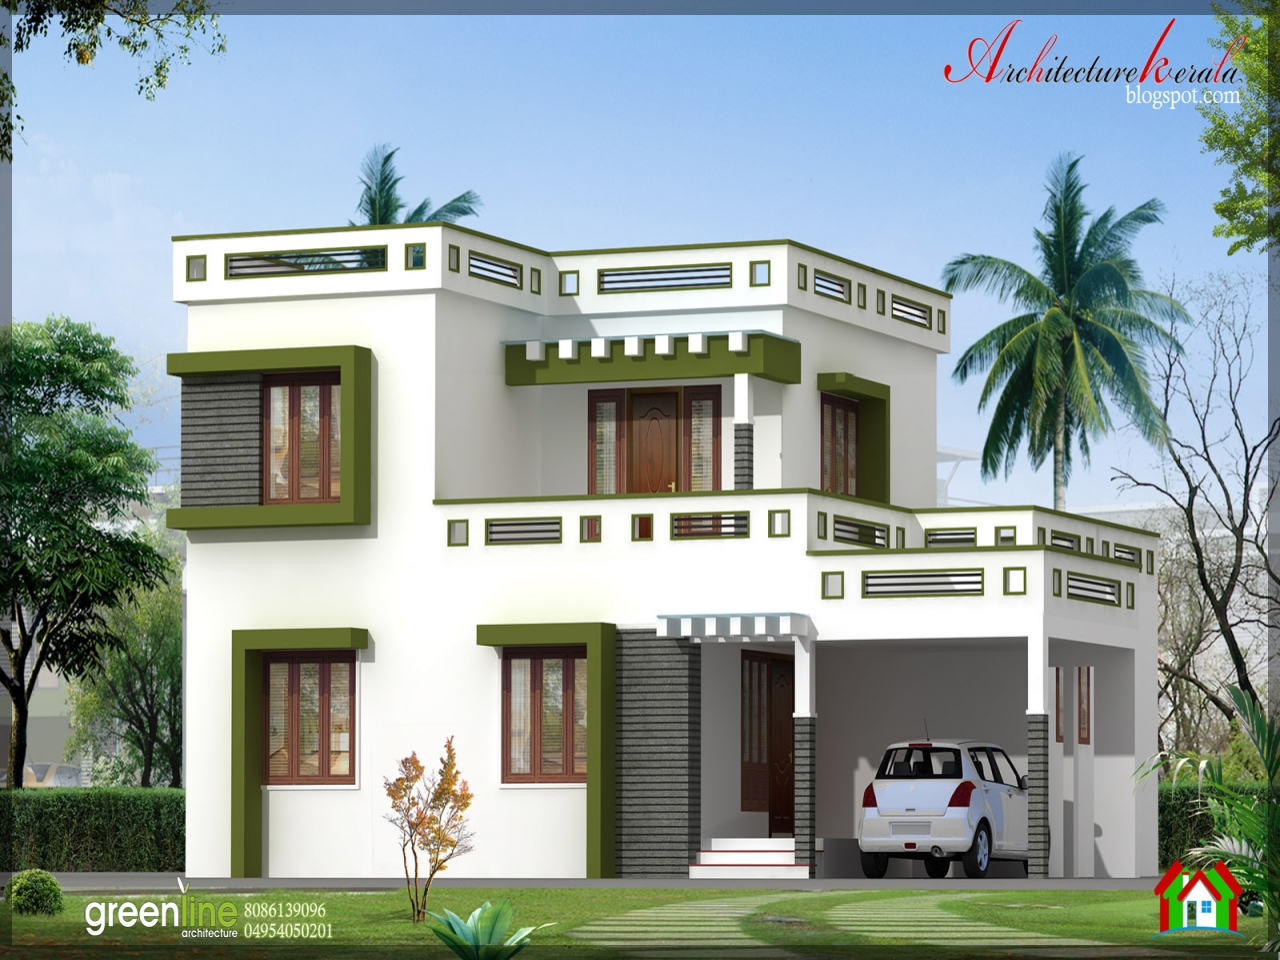 Kerala 3 Bedroom House Plans House Plans Kerala Home